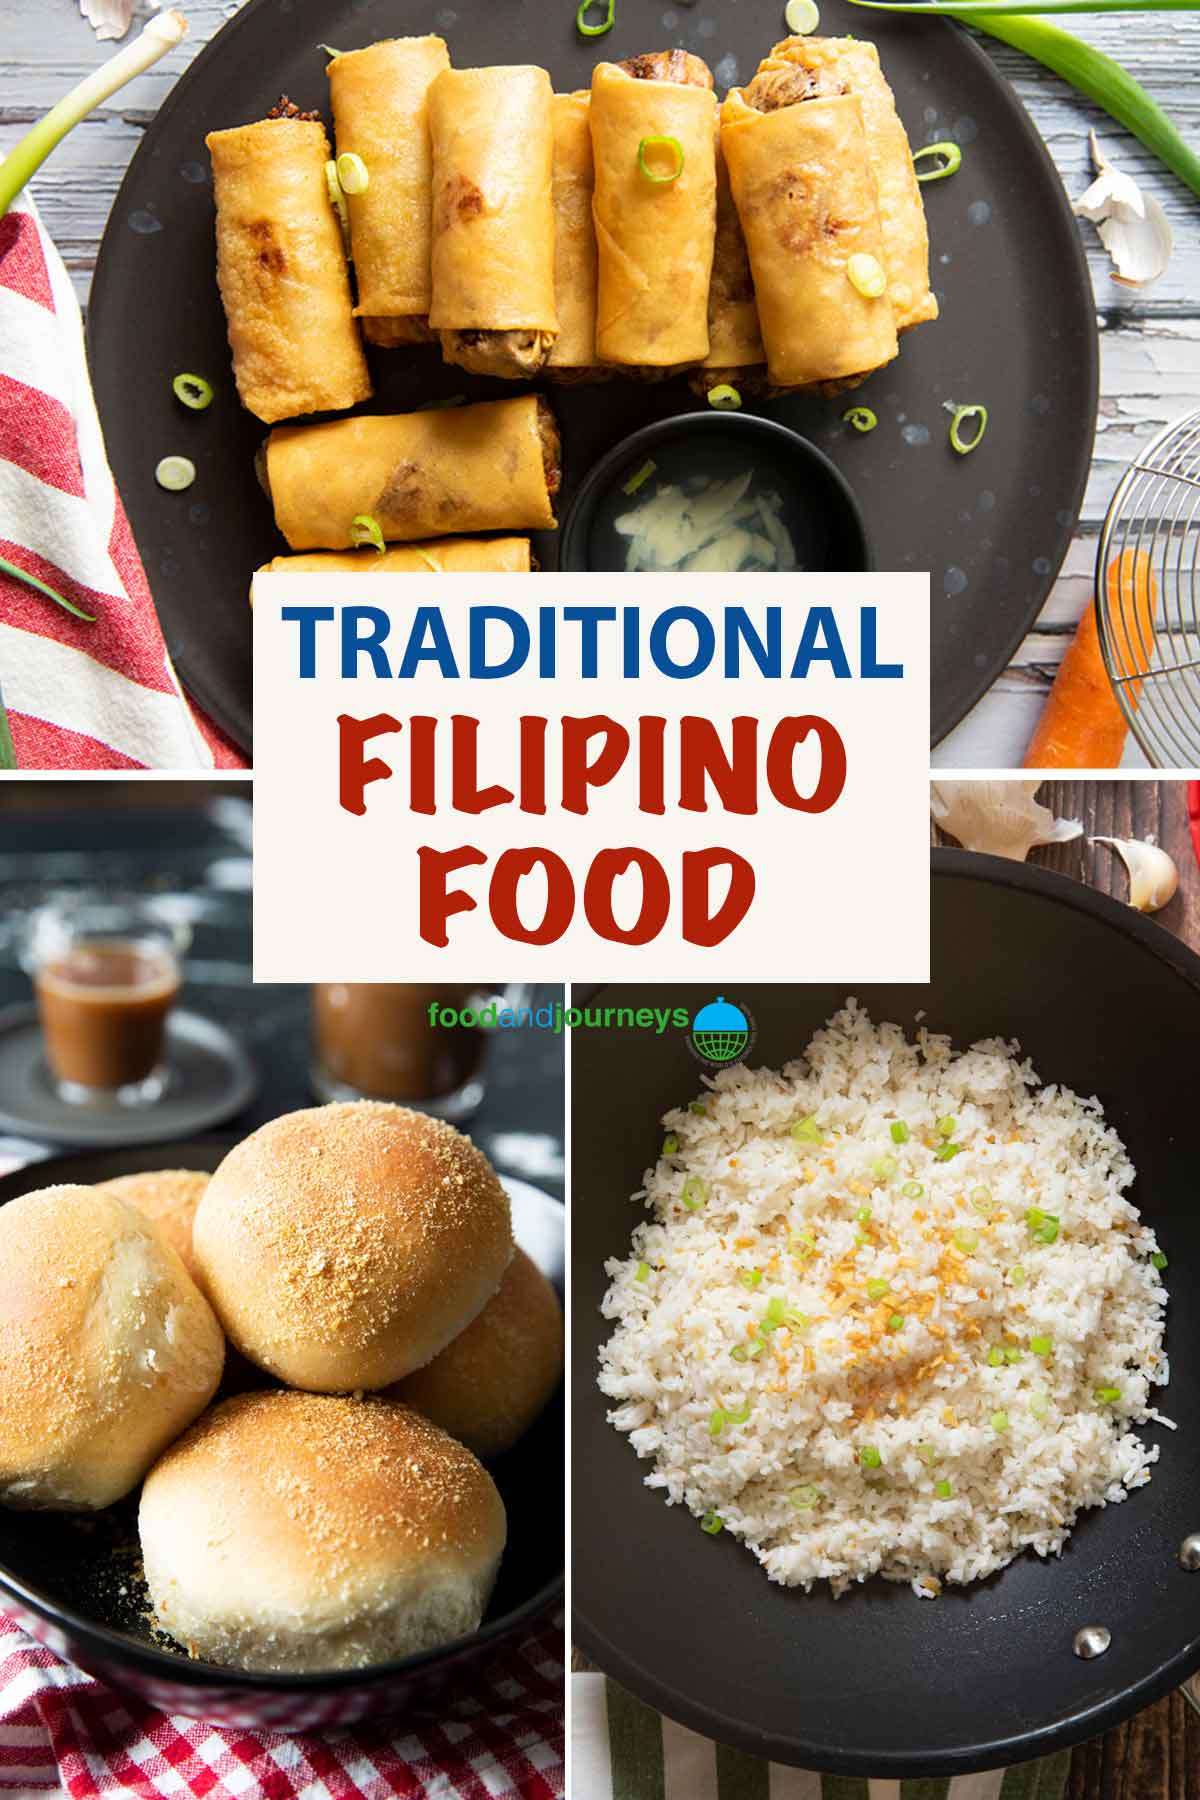 An image showing a collage of traditional Filipino dishes.